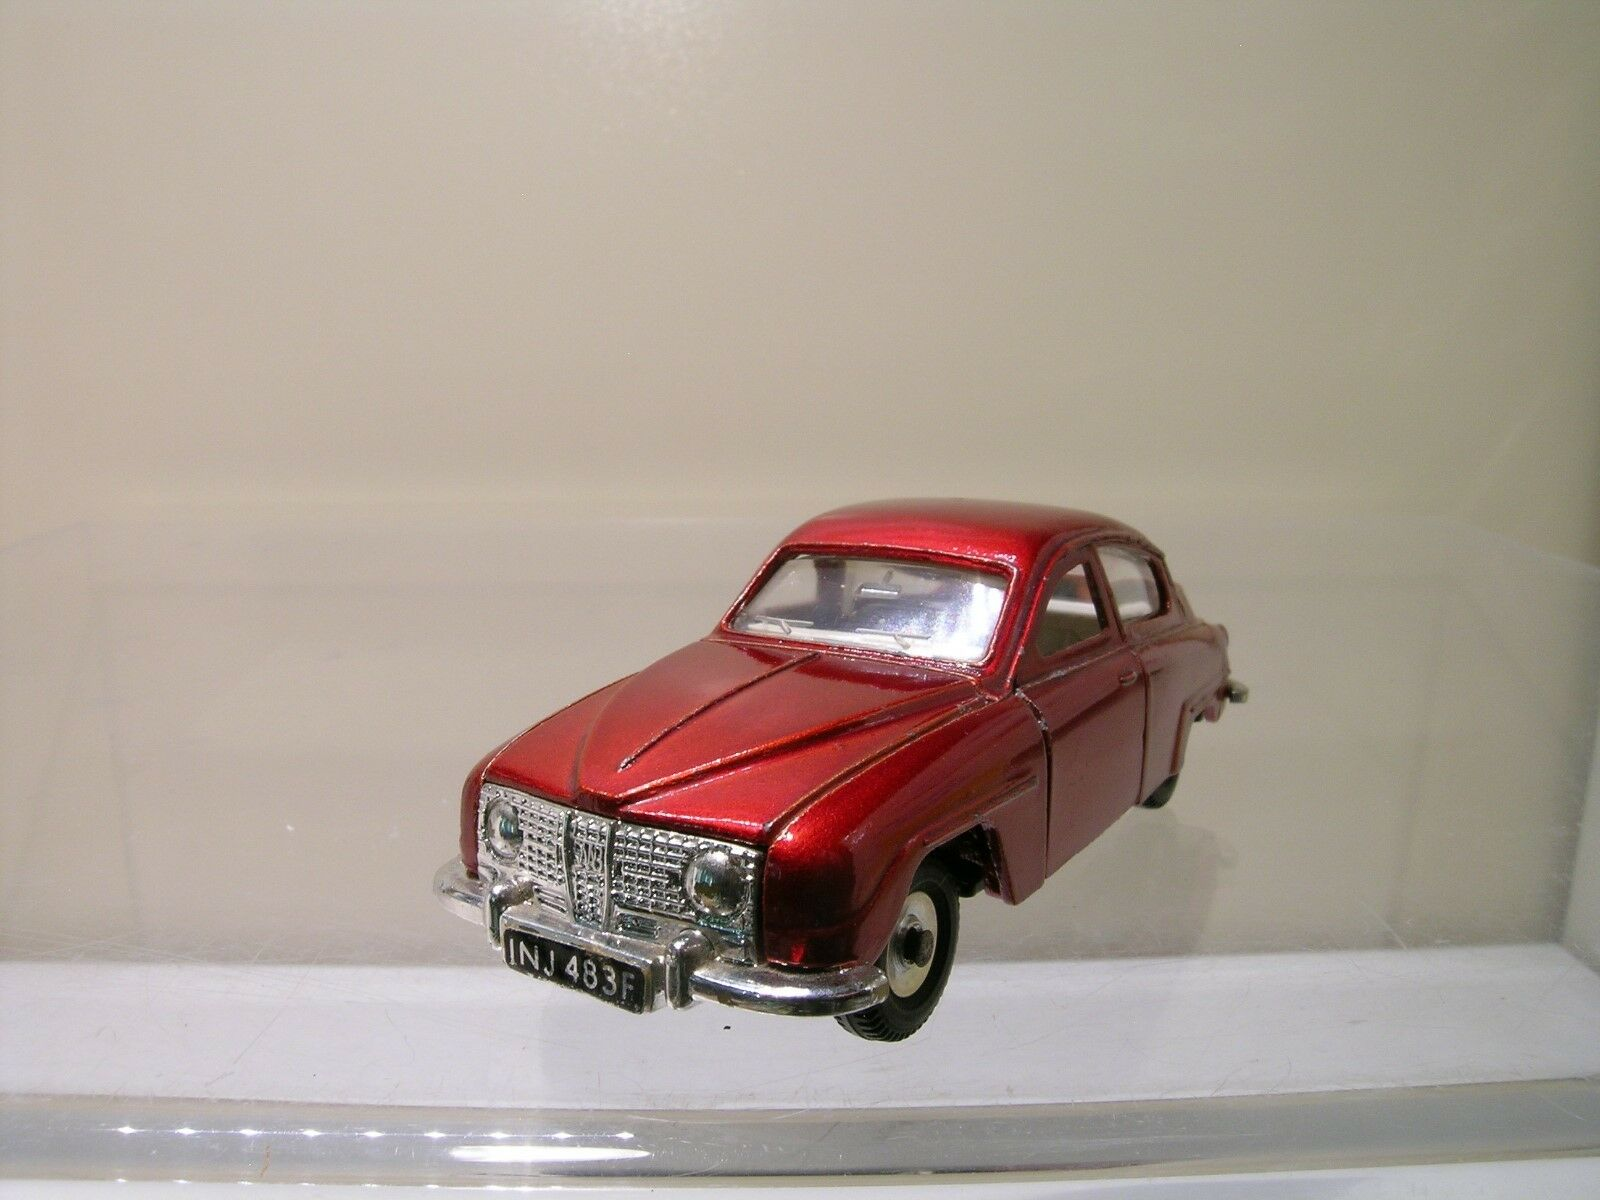 DINKY TOYS SAAB 96 SEDAN METALLIC RED NEAR-MINT SCALE 1 43